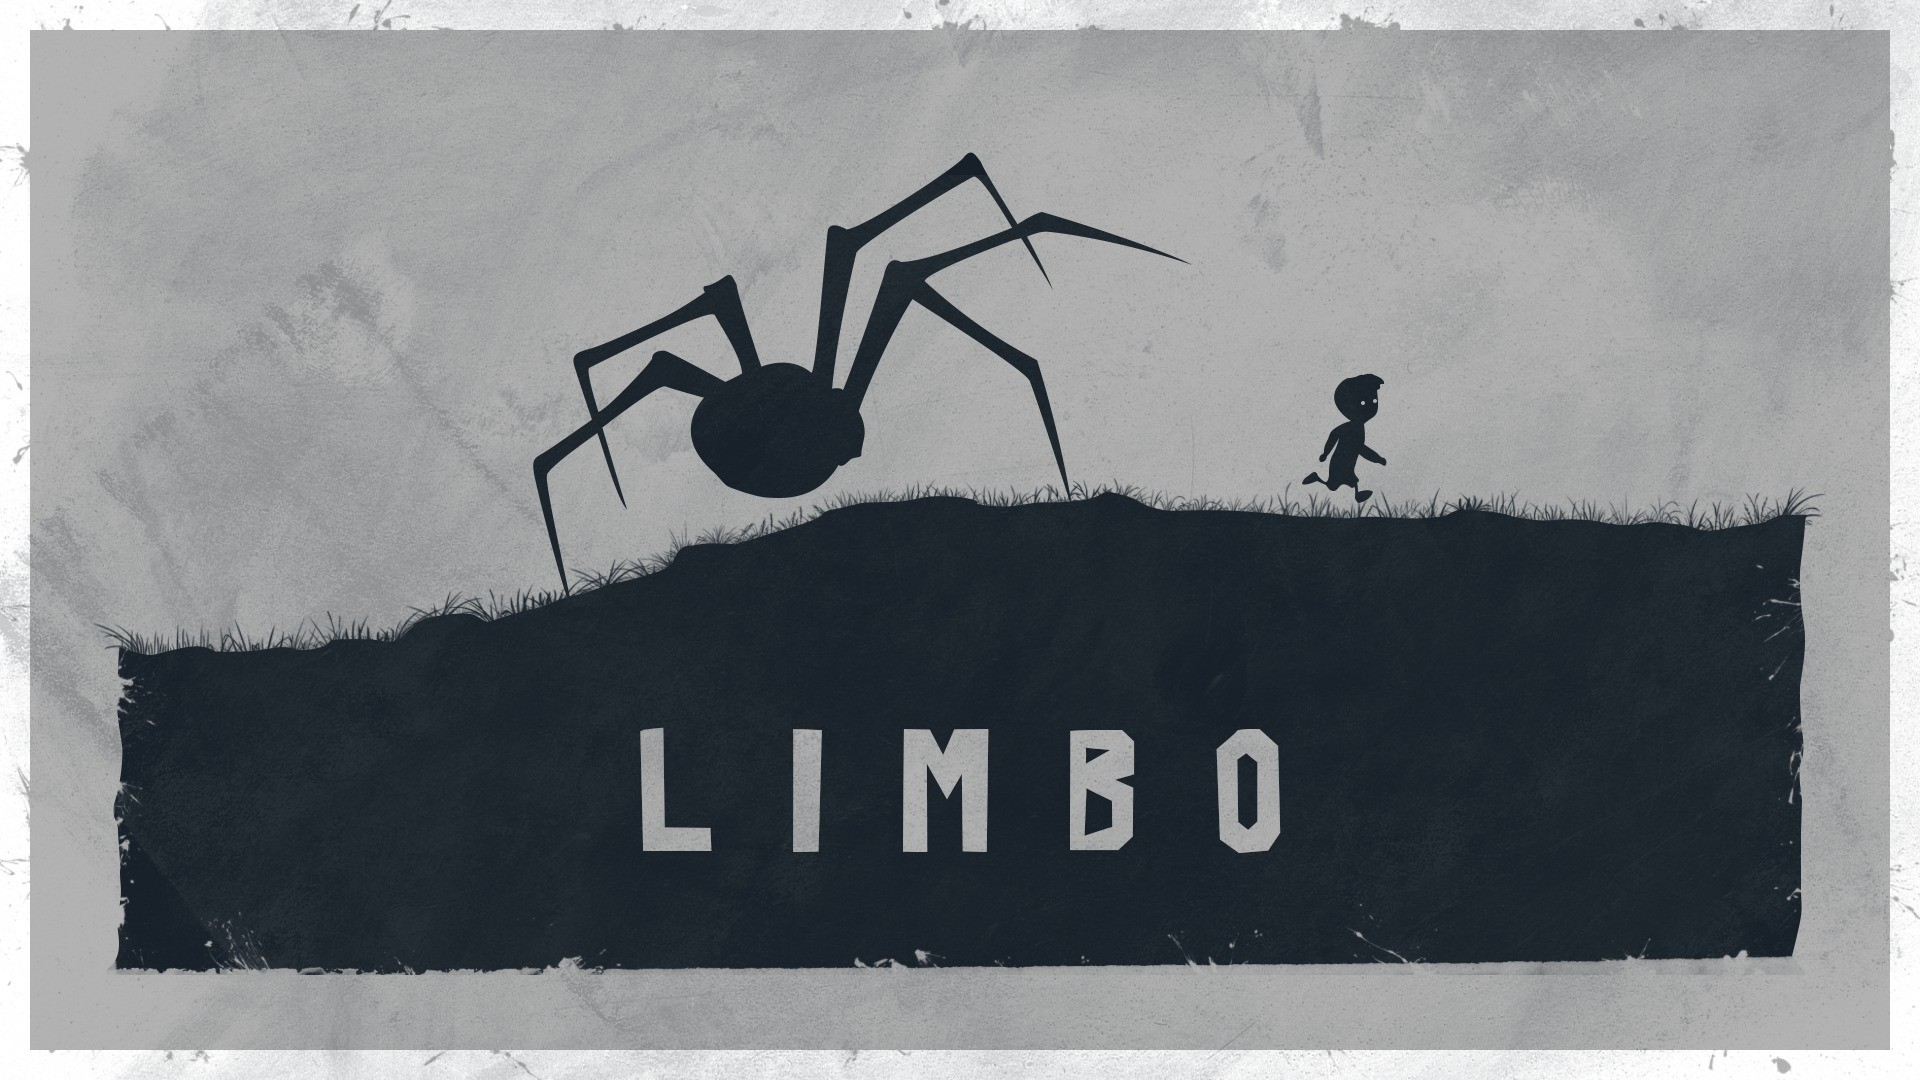 Cute Boy Wallpaper Download Limbo Spider Hd Games 4k Wallpapers Images Backgrounds